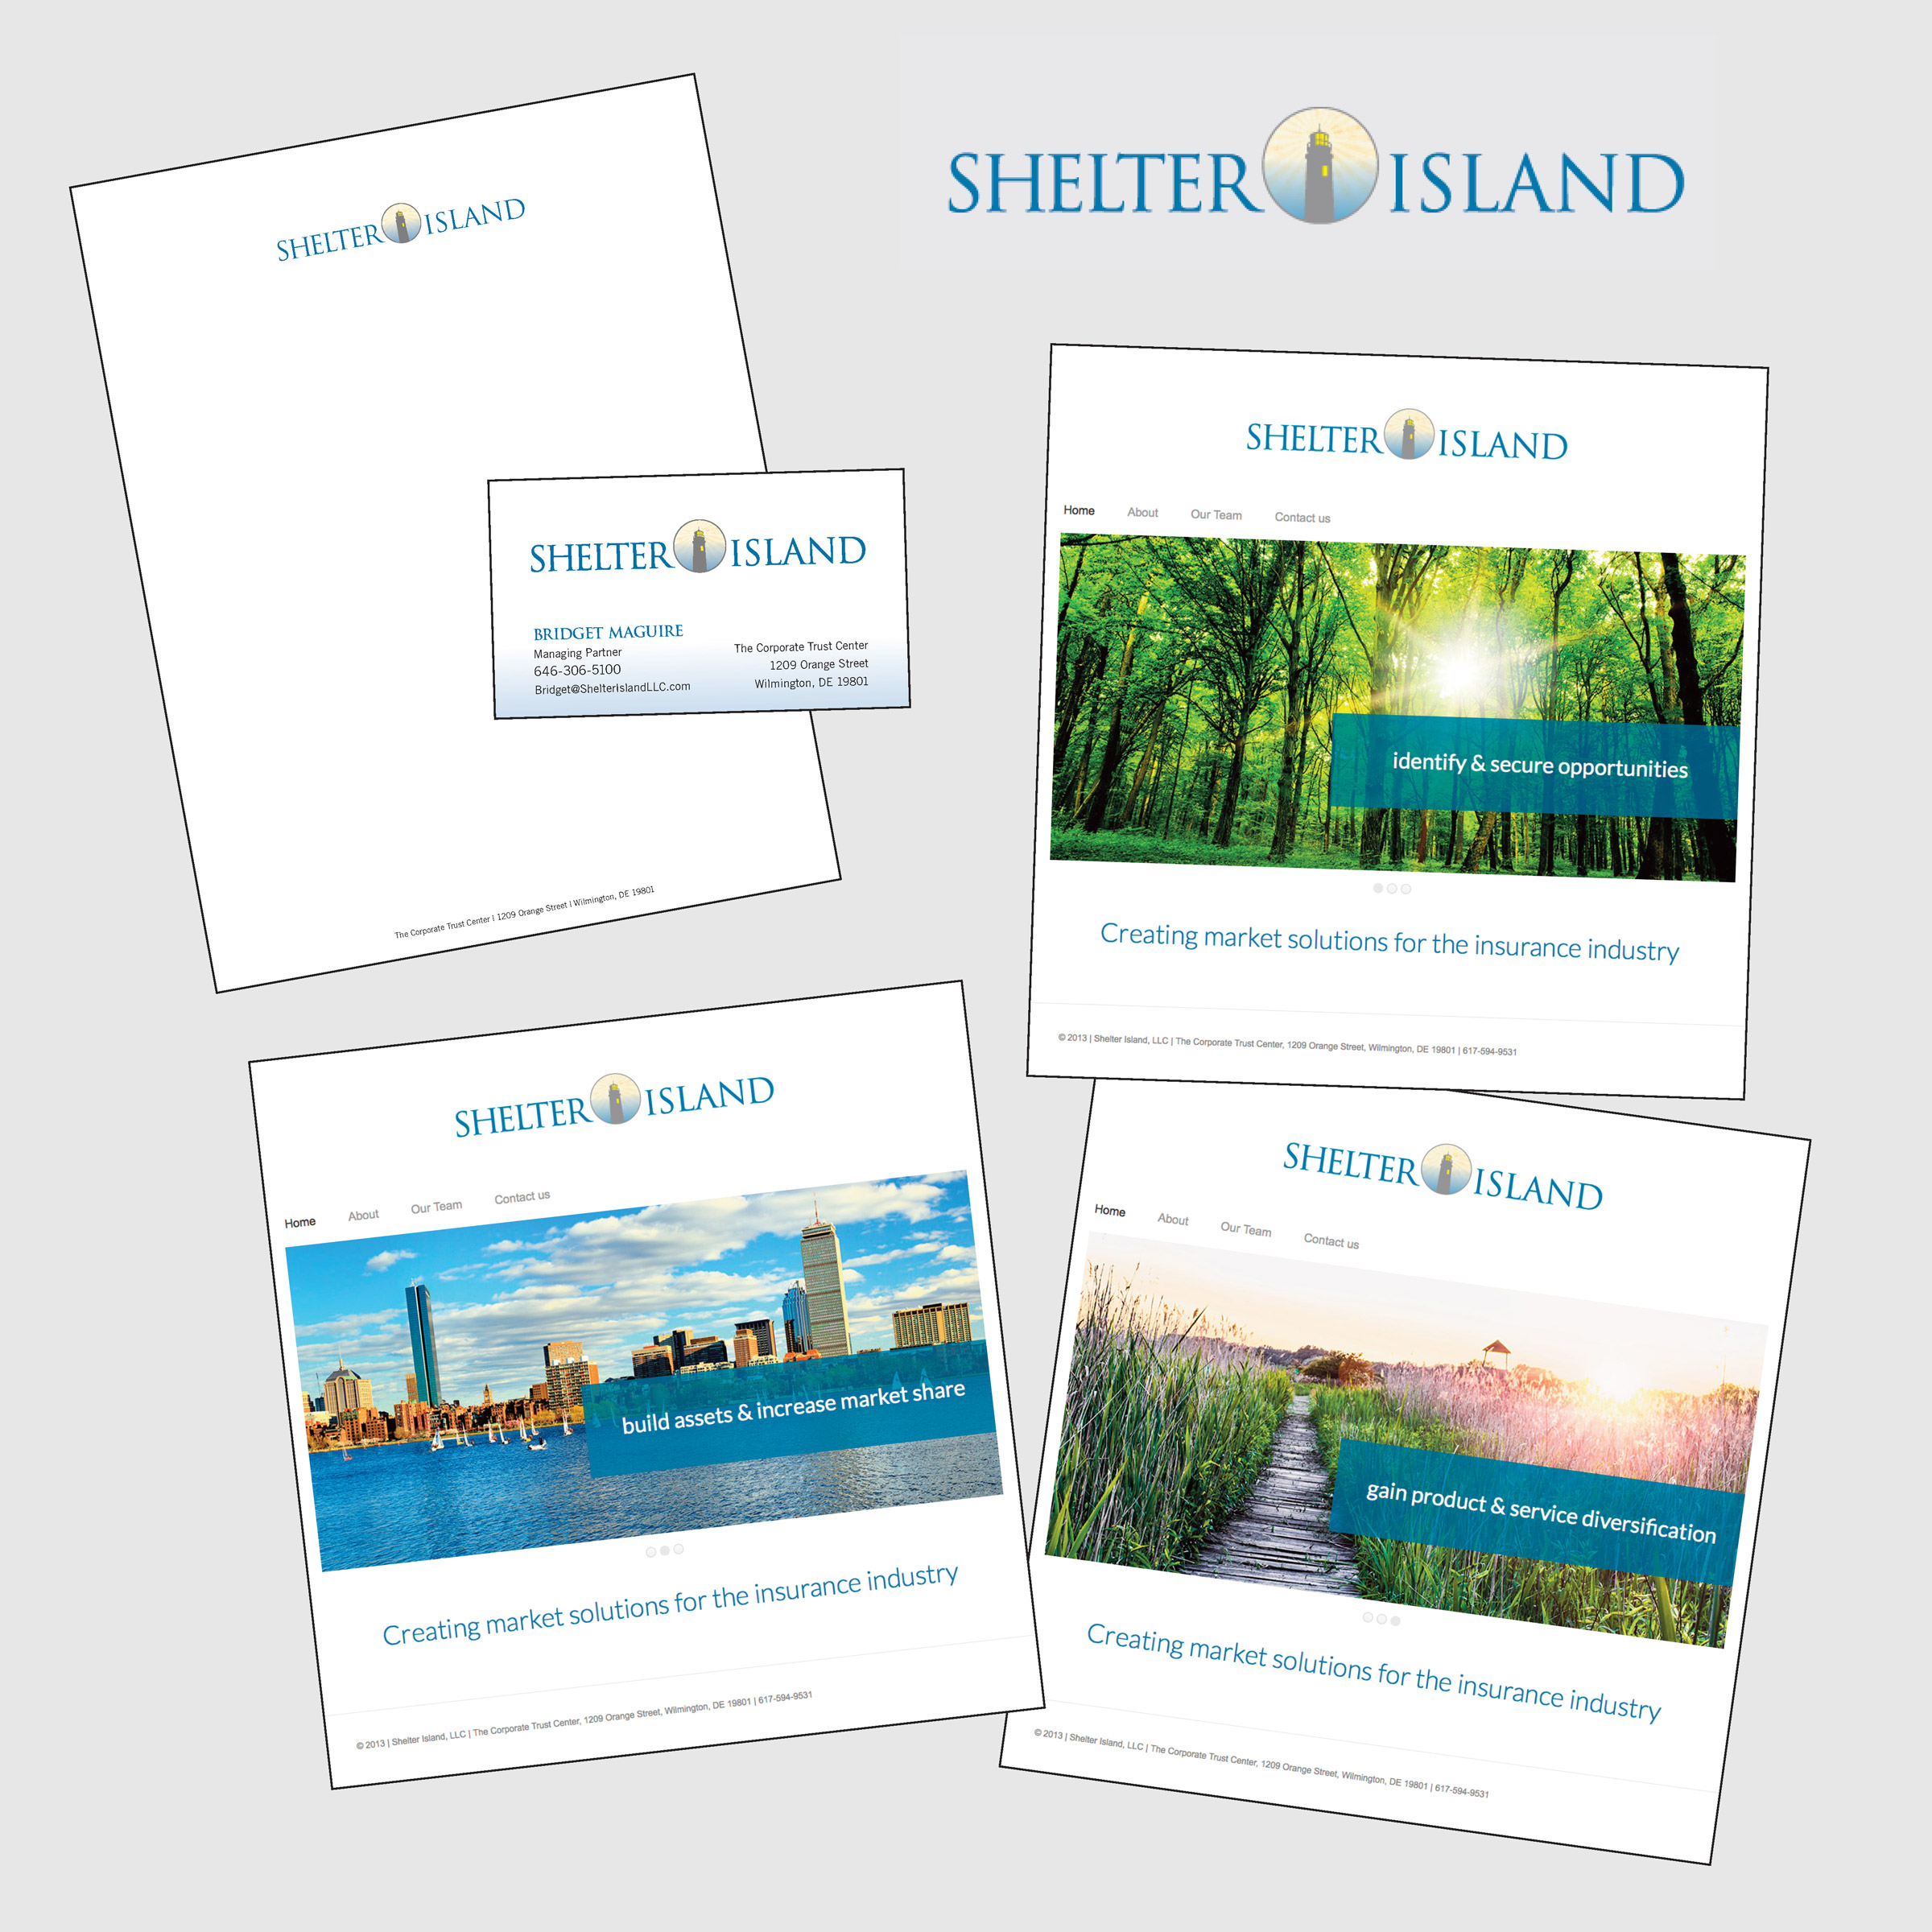 Shelter Island logo, stationery, & website pages - portfolio image